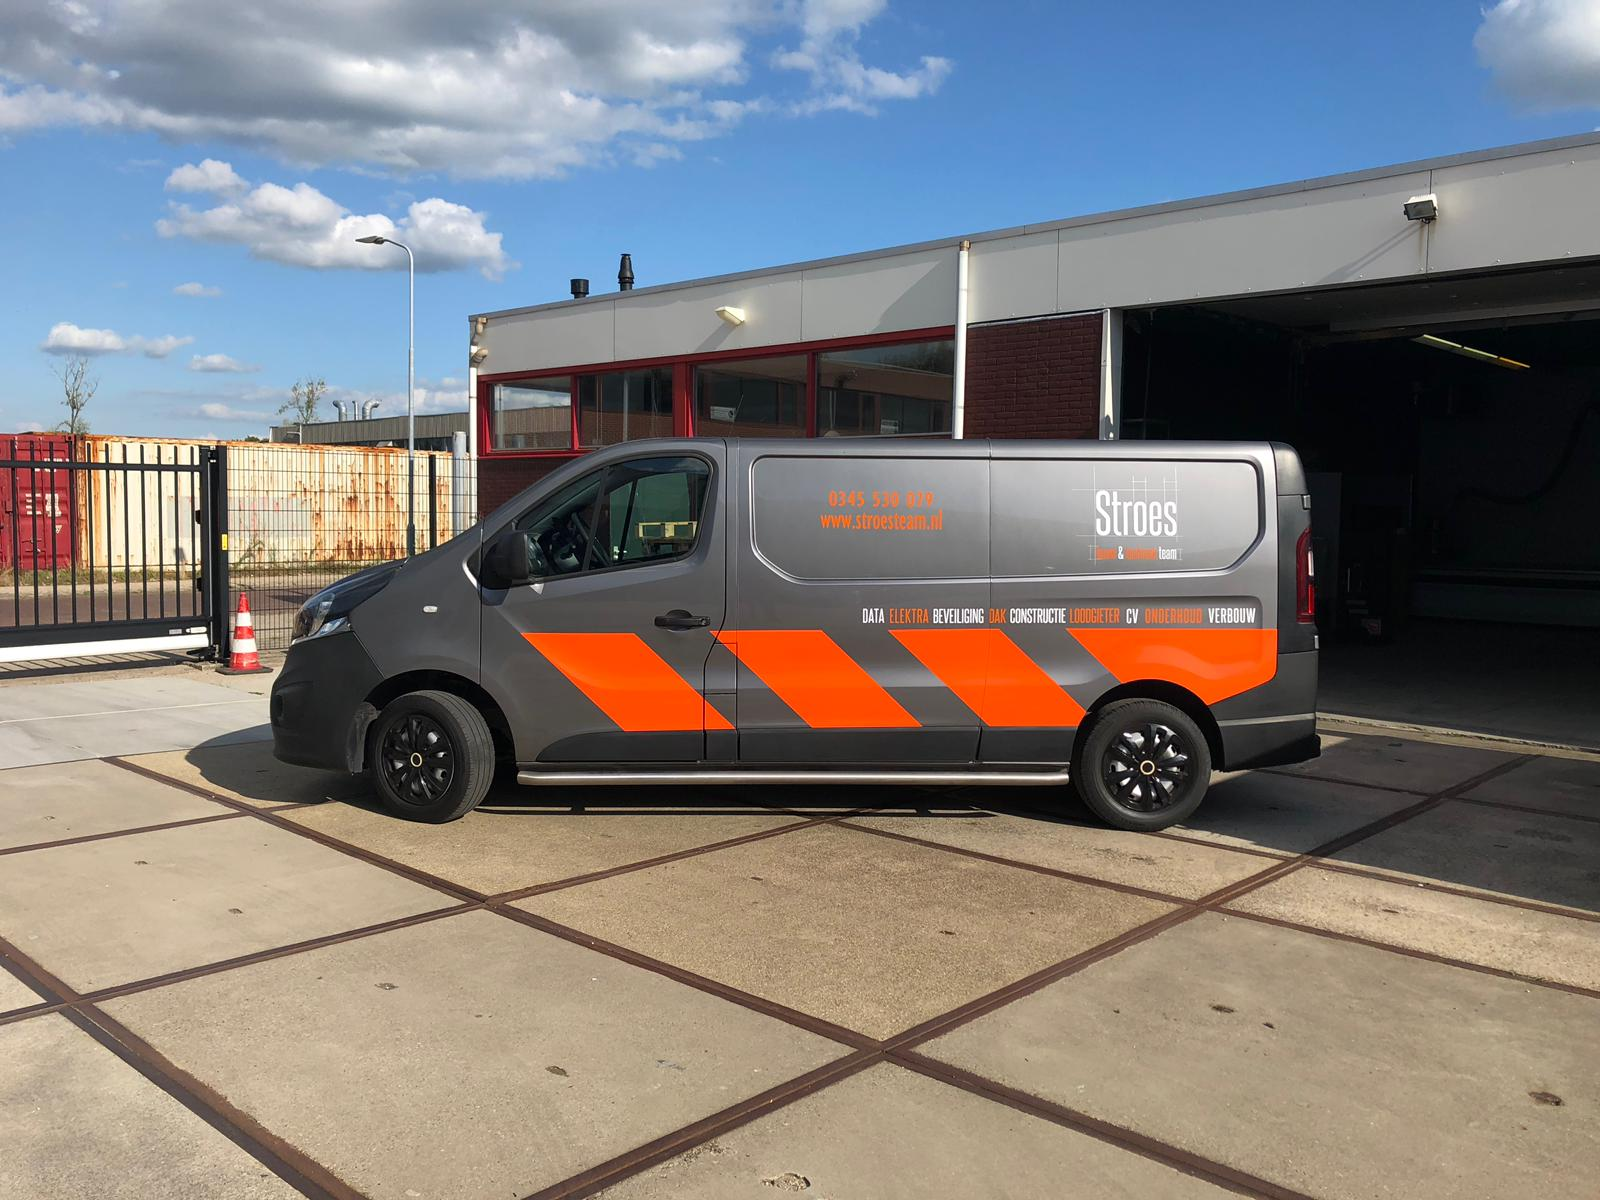 Auto belettering voor Stroes in Culemborg